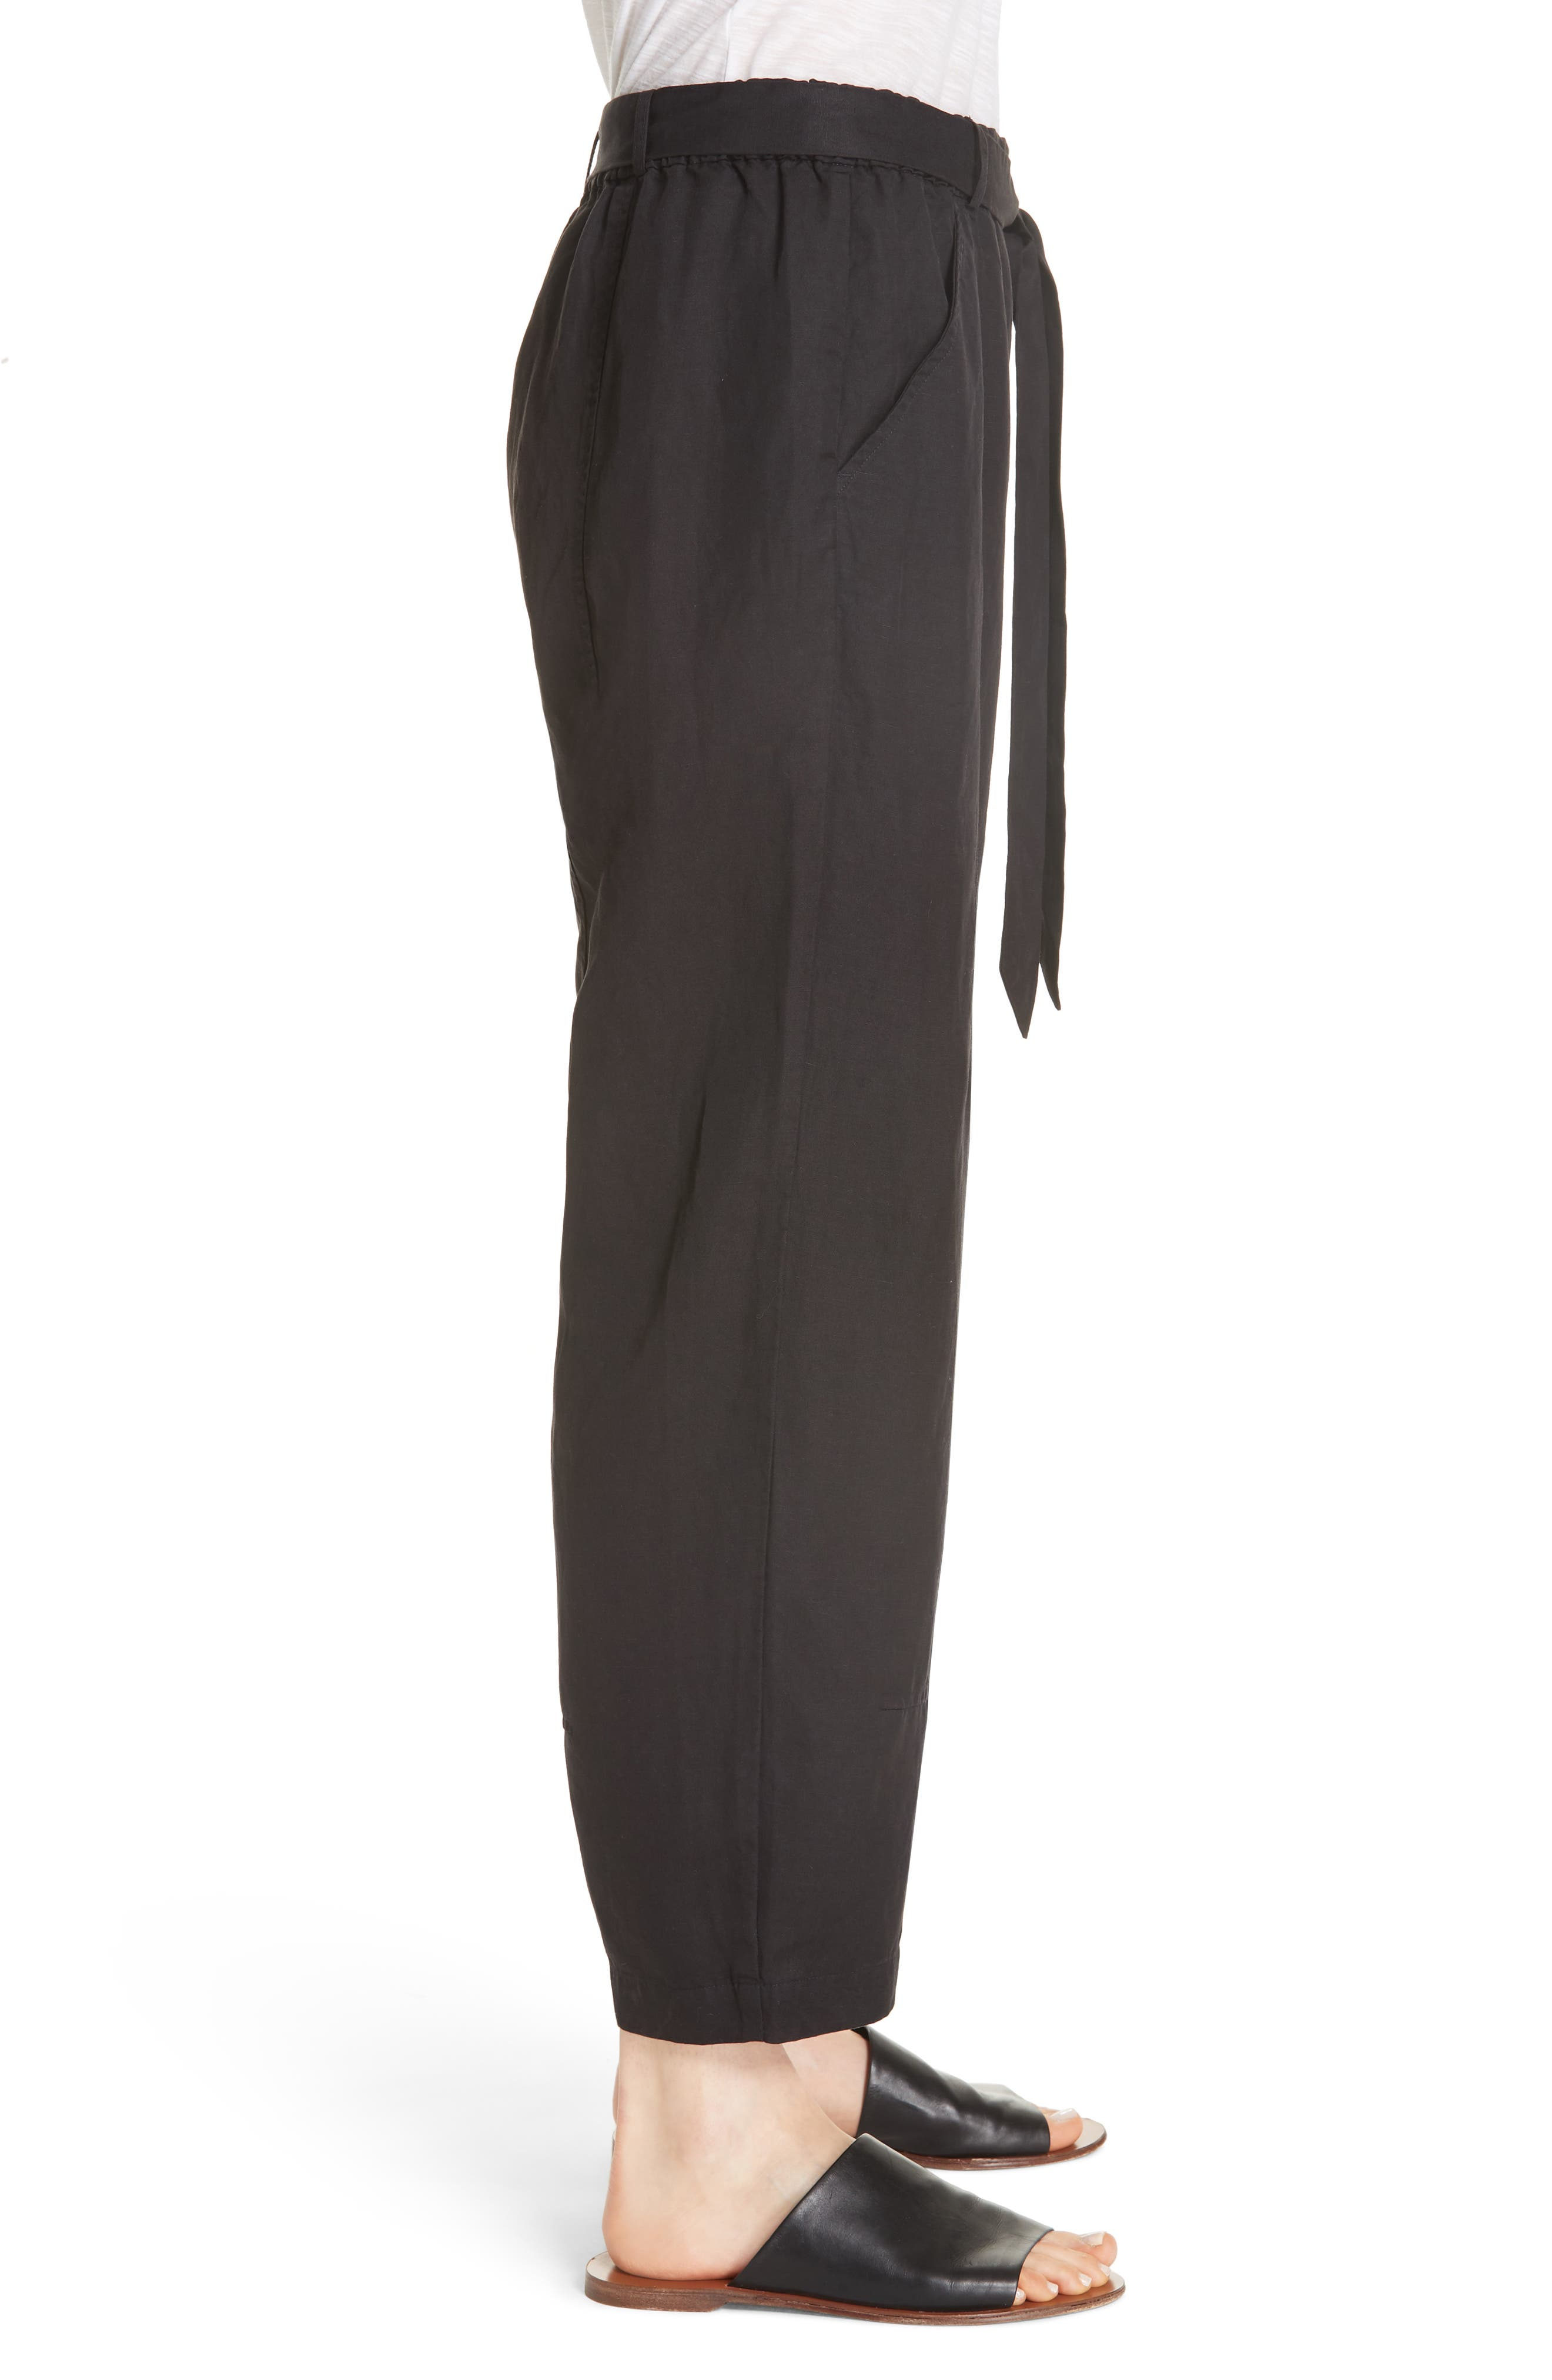 EILEEN FISHER, Lantern Twill Ankle Pants, Alternate thumbnail 4, color, 001